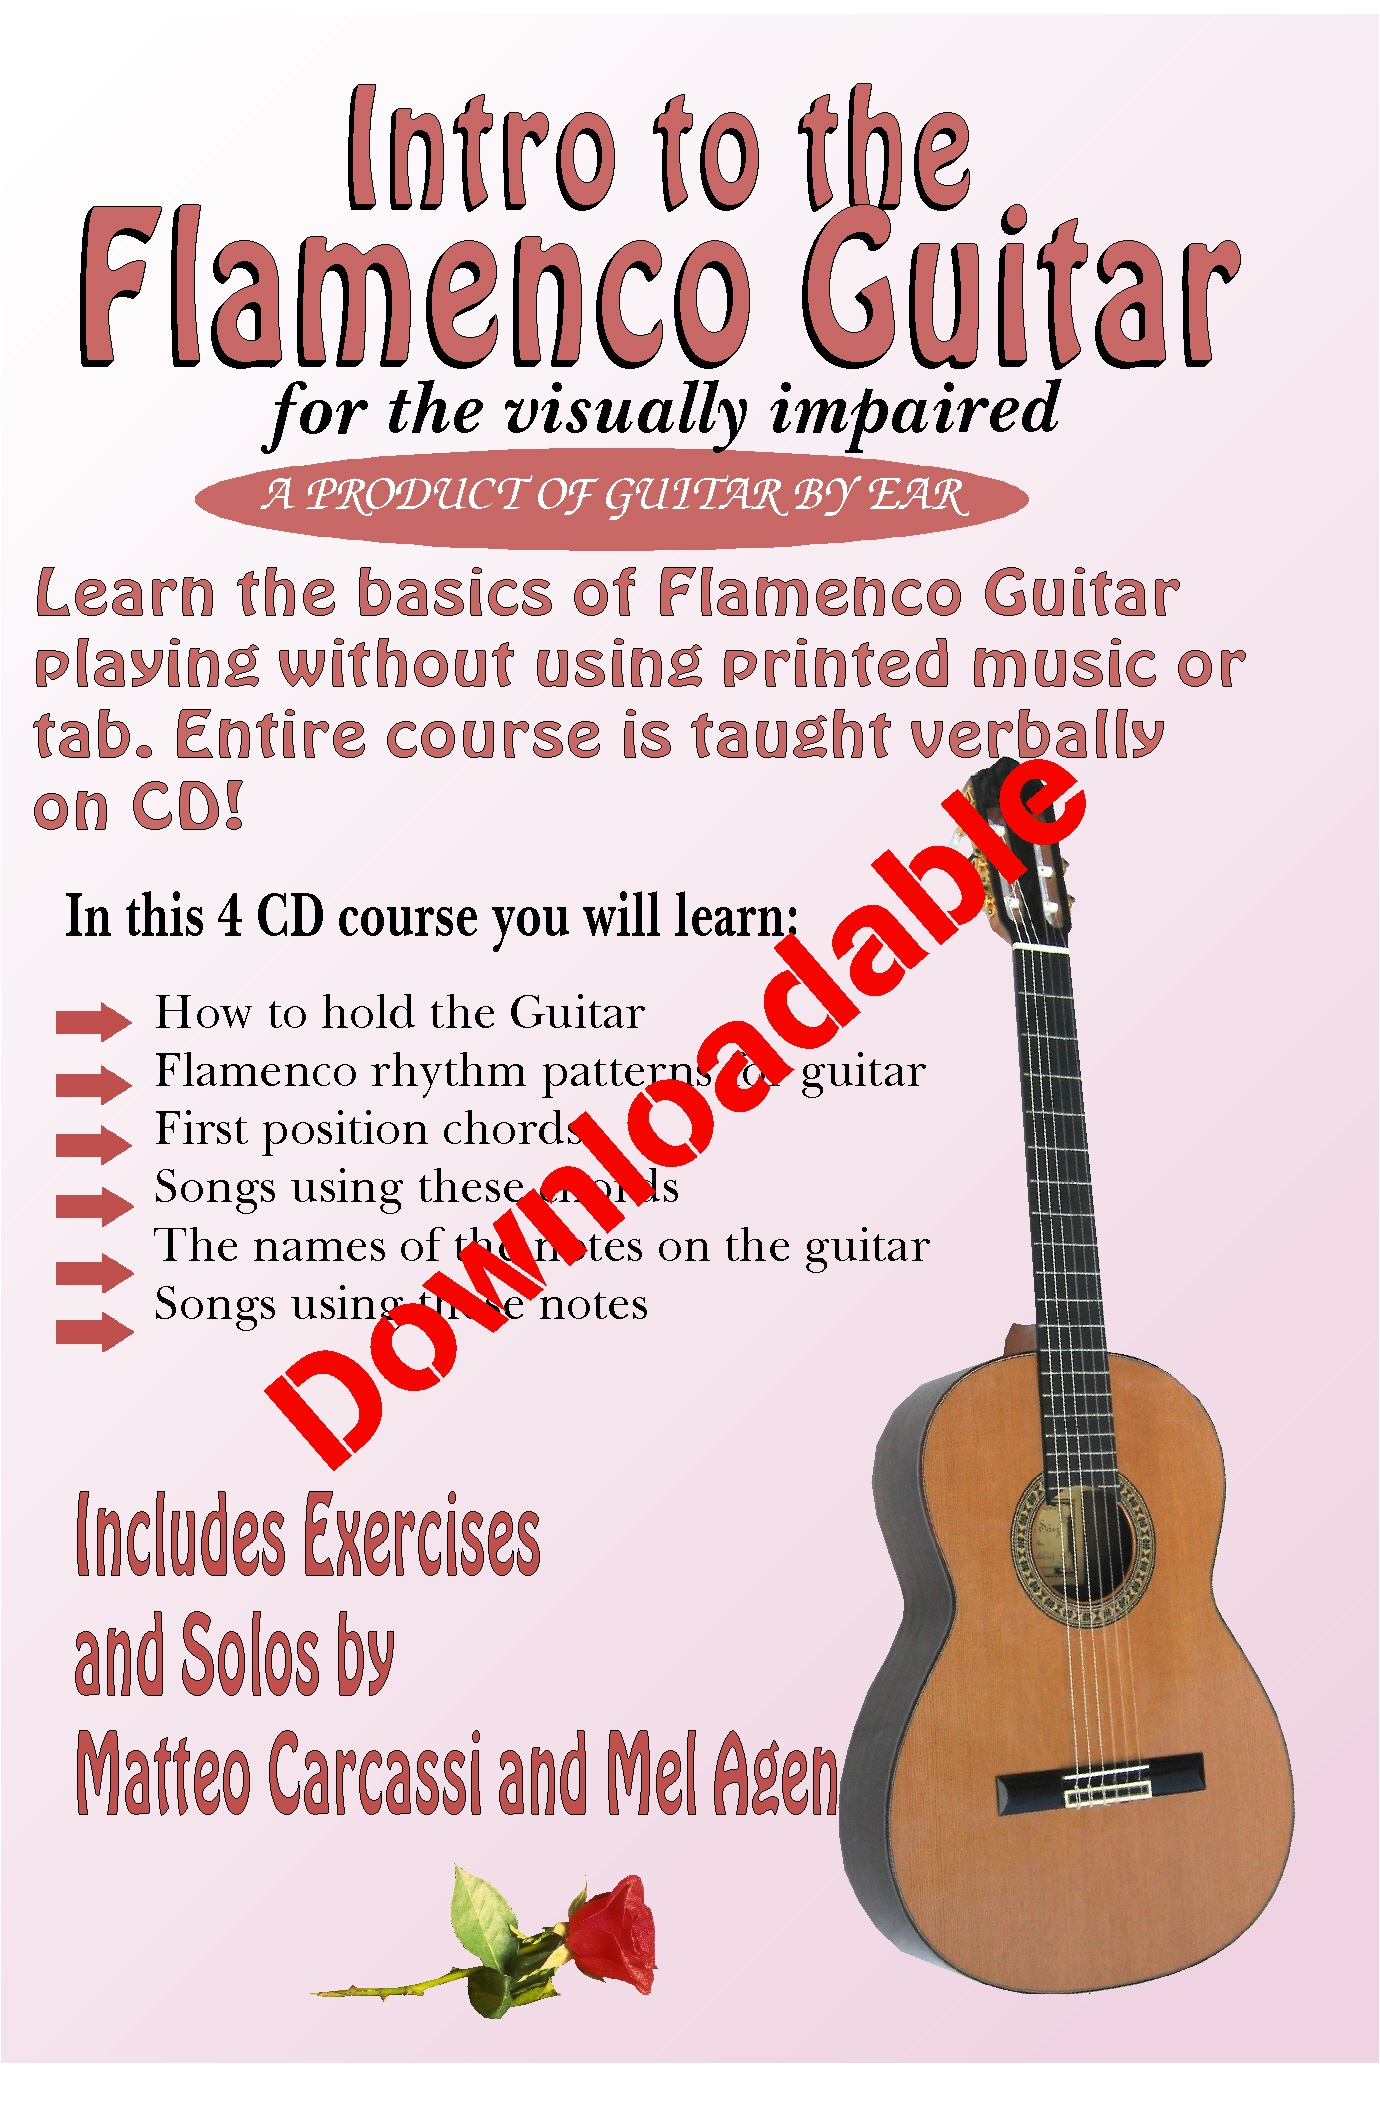 Intro to the Flamenco Guitar for the Visually Impaired (Downloadable)